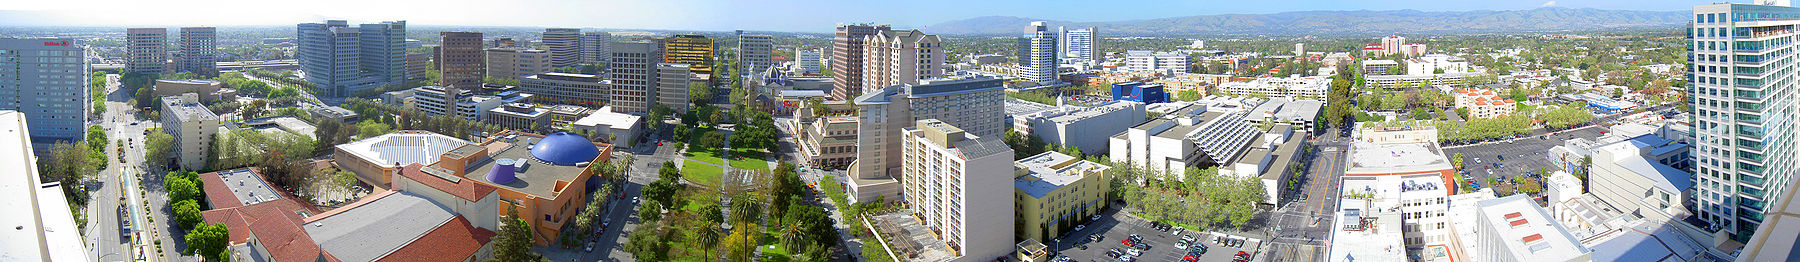 1800px panoramic downtown san jose